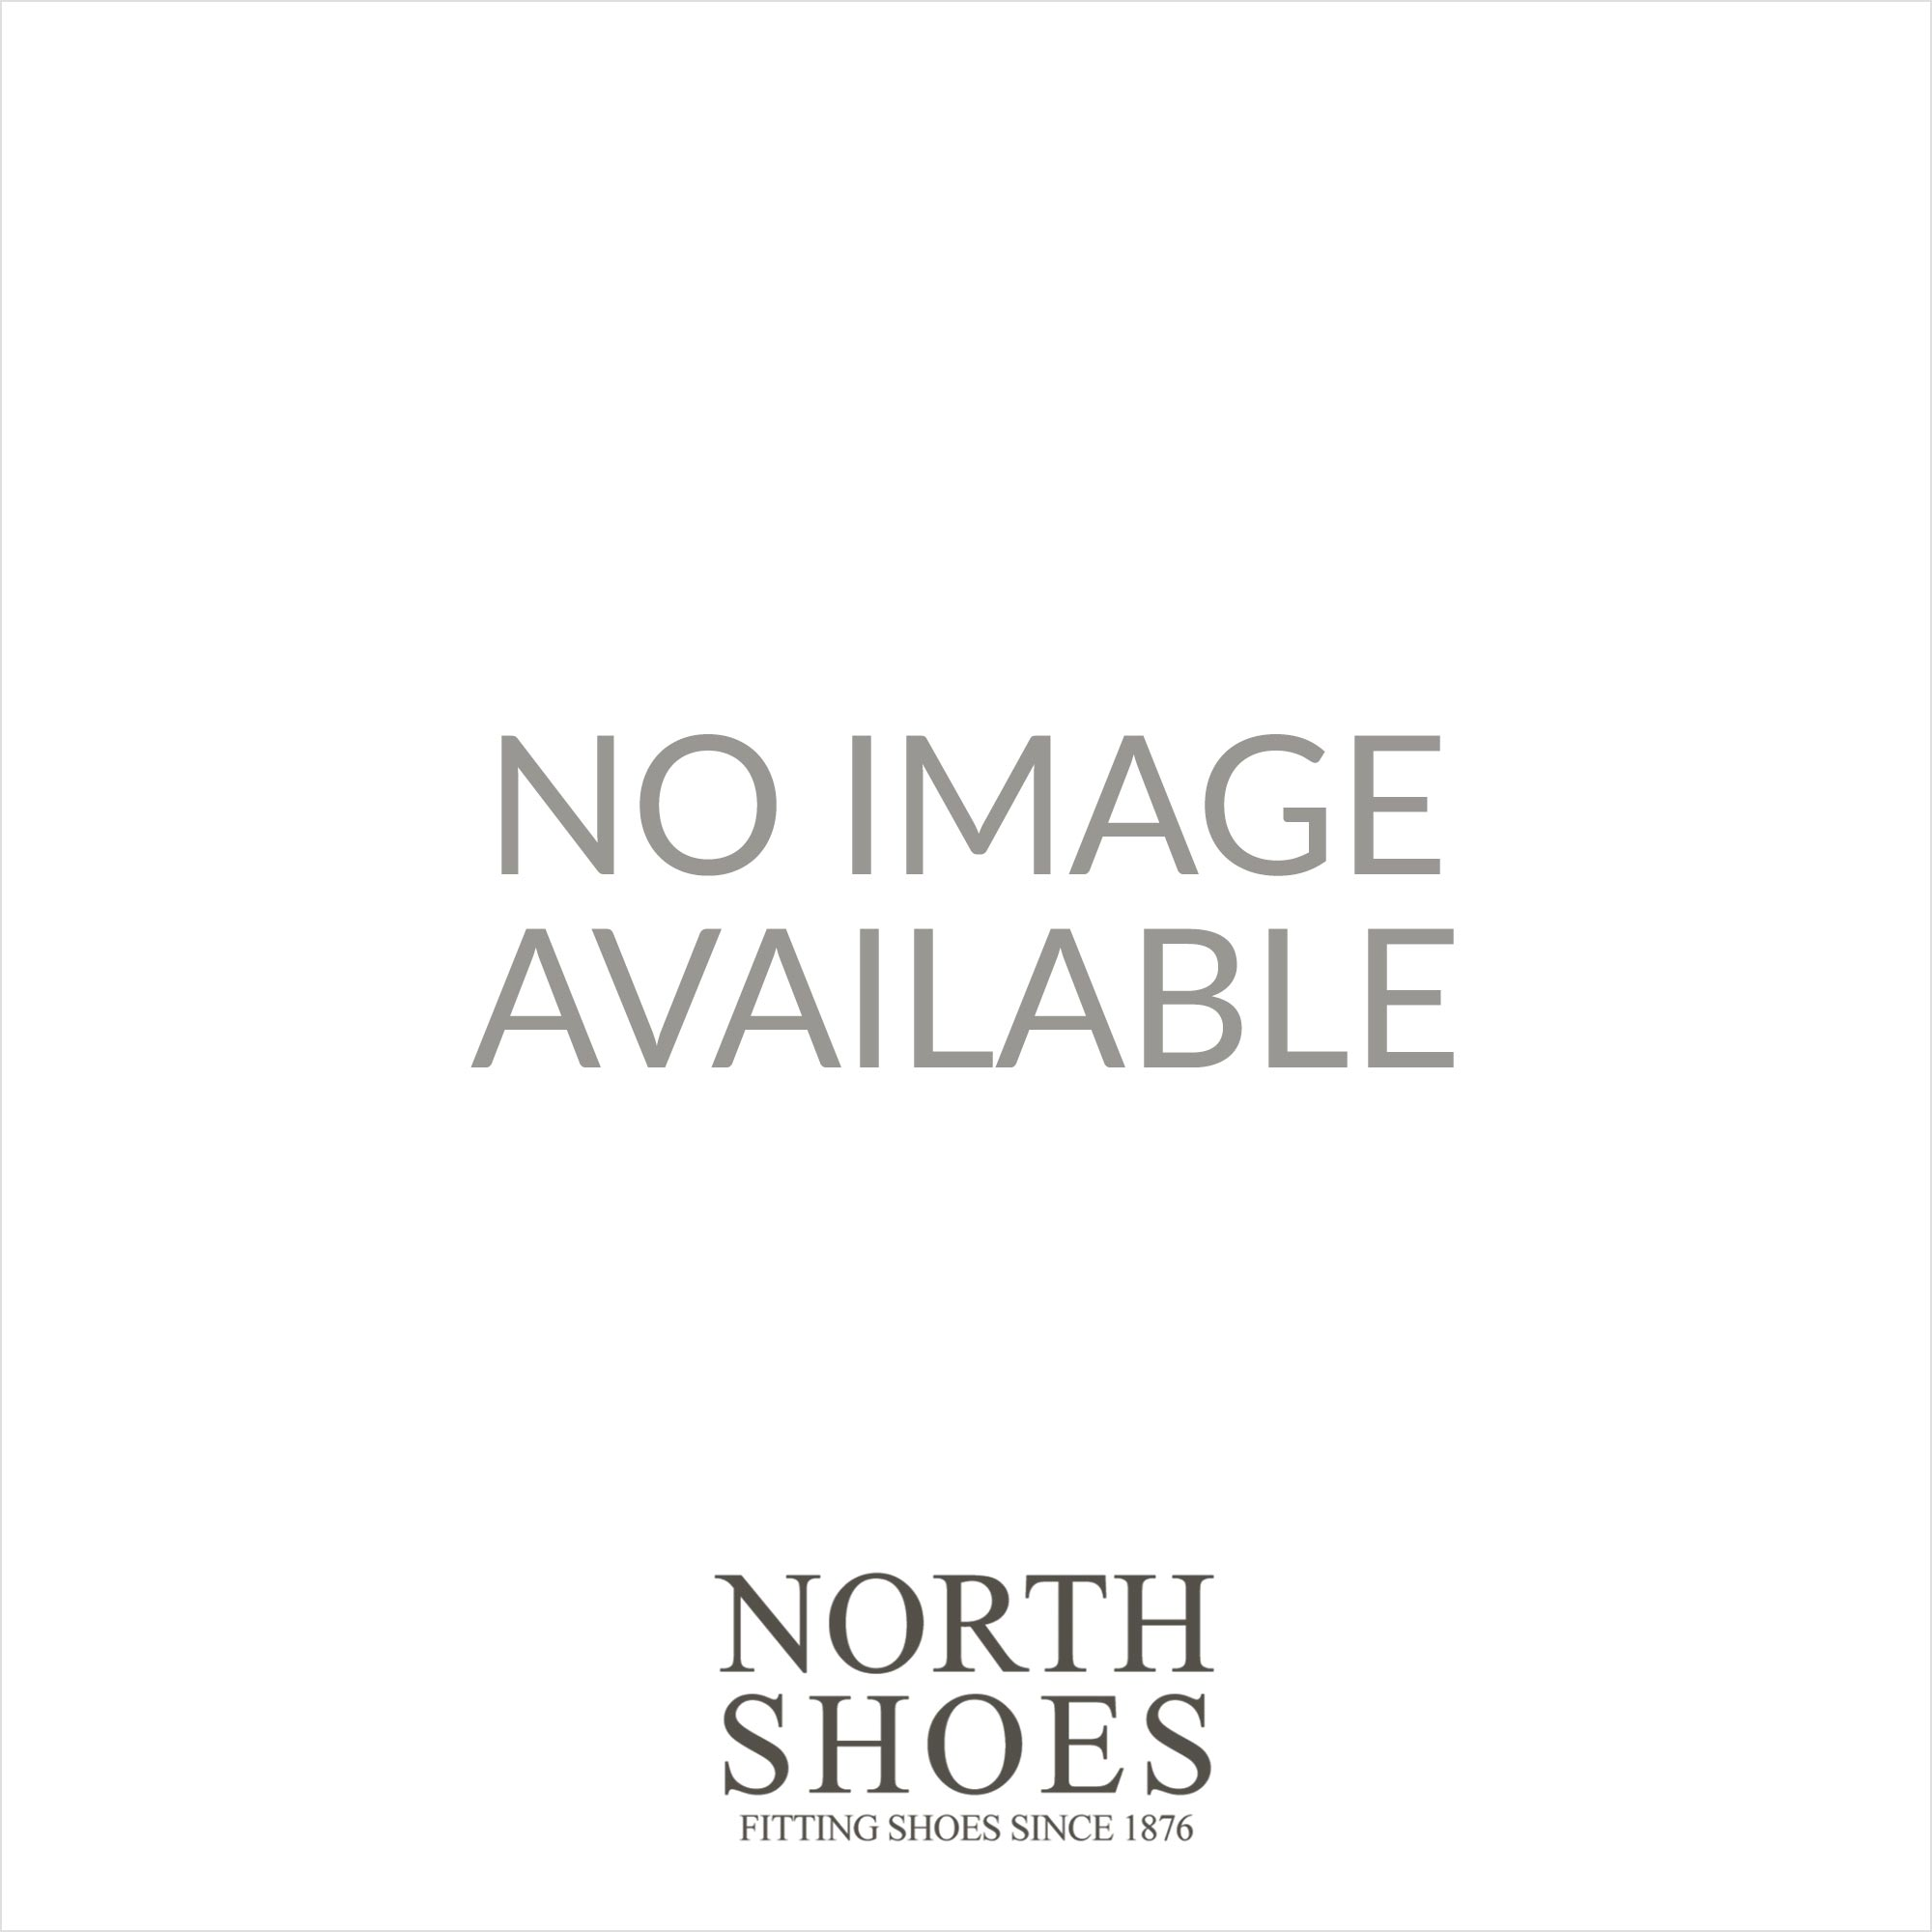 88e4158fedeb9 Clarks Baystone Go Gortex Tobacco Brown Leather Mens Lace Up Walking Shoe -  Clarks from North Shoes UK